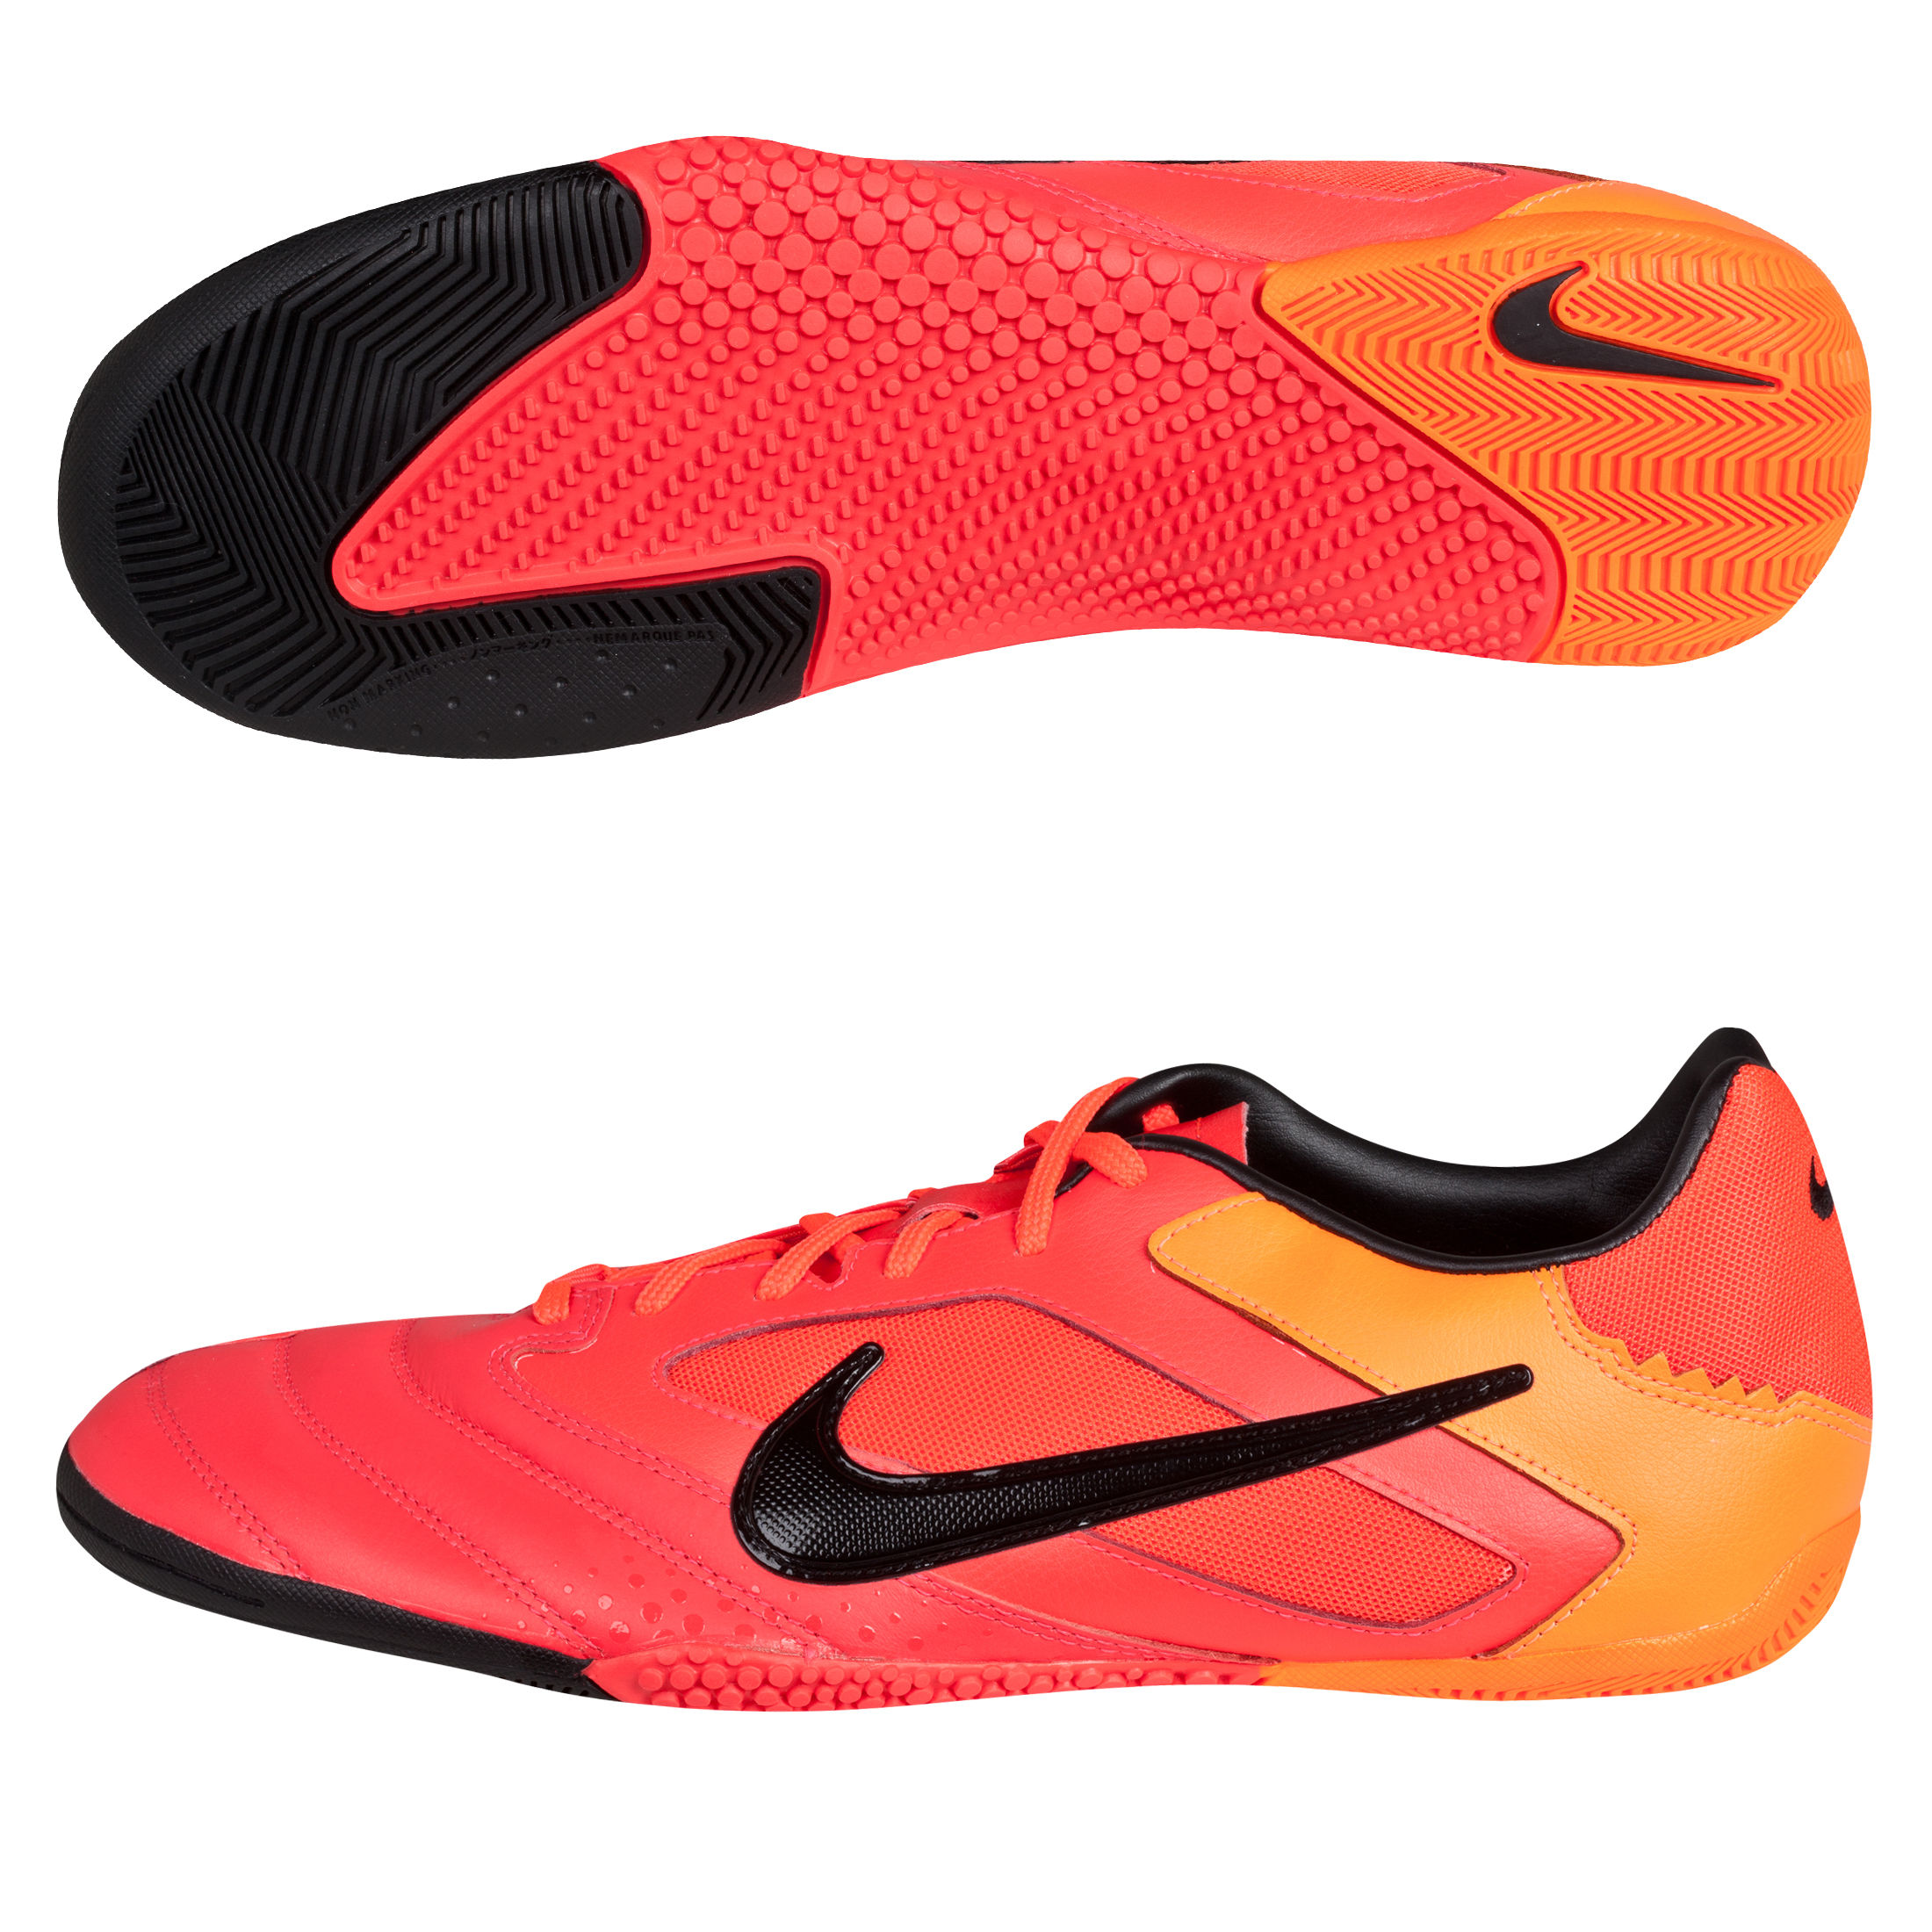 Nike5 Elastico Pro Trainers - Bright Crimson/Total Orange/Black